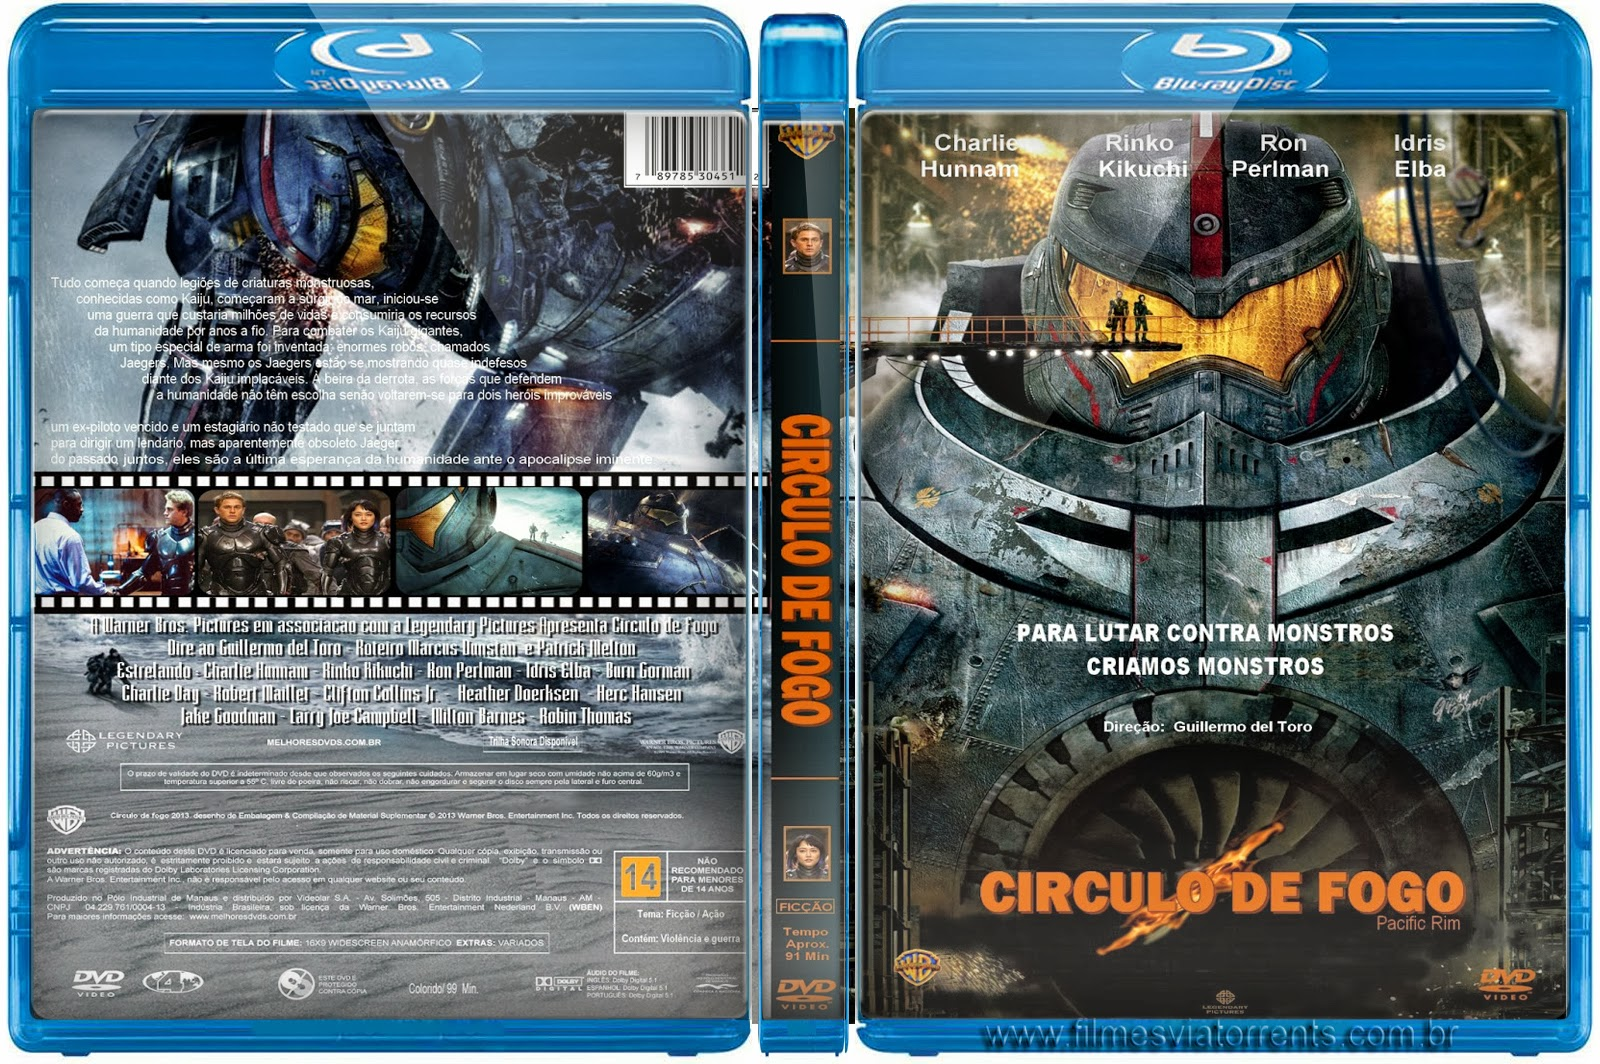 Círculo De Fogo,Pacific Rim Blu-ray Torrent